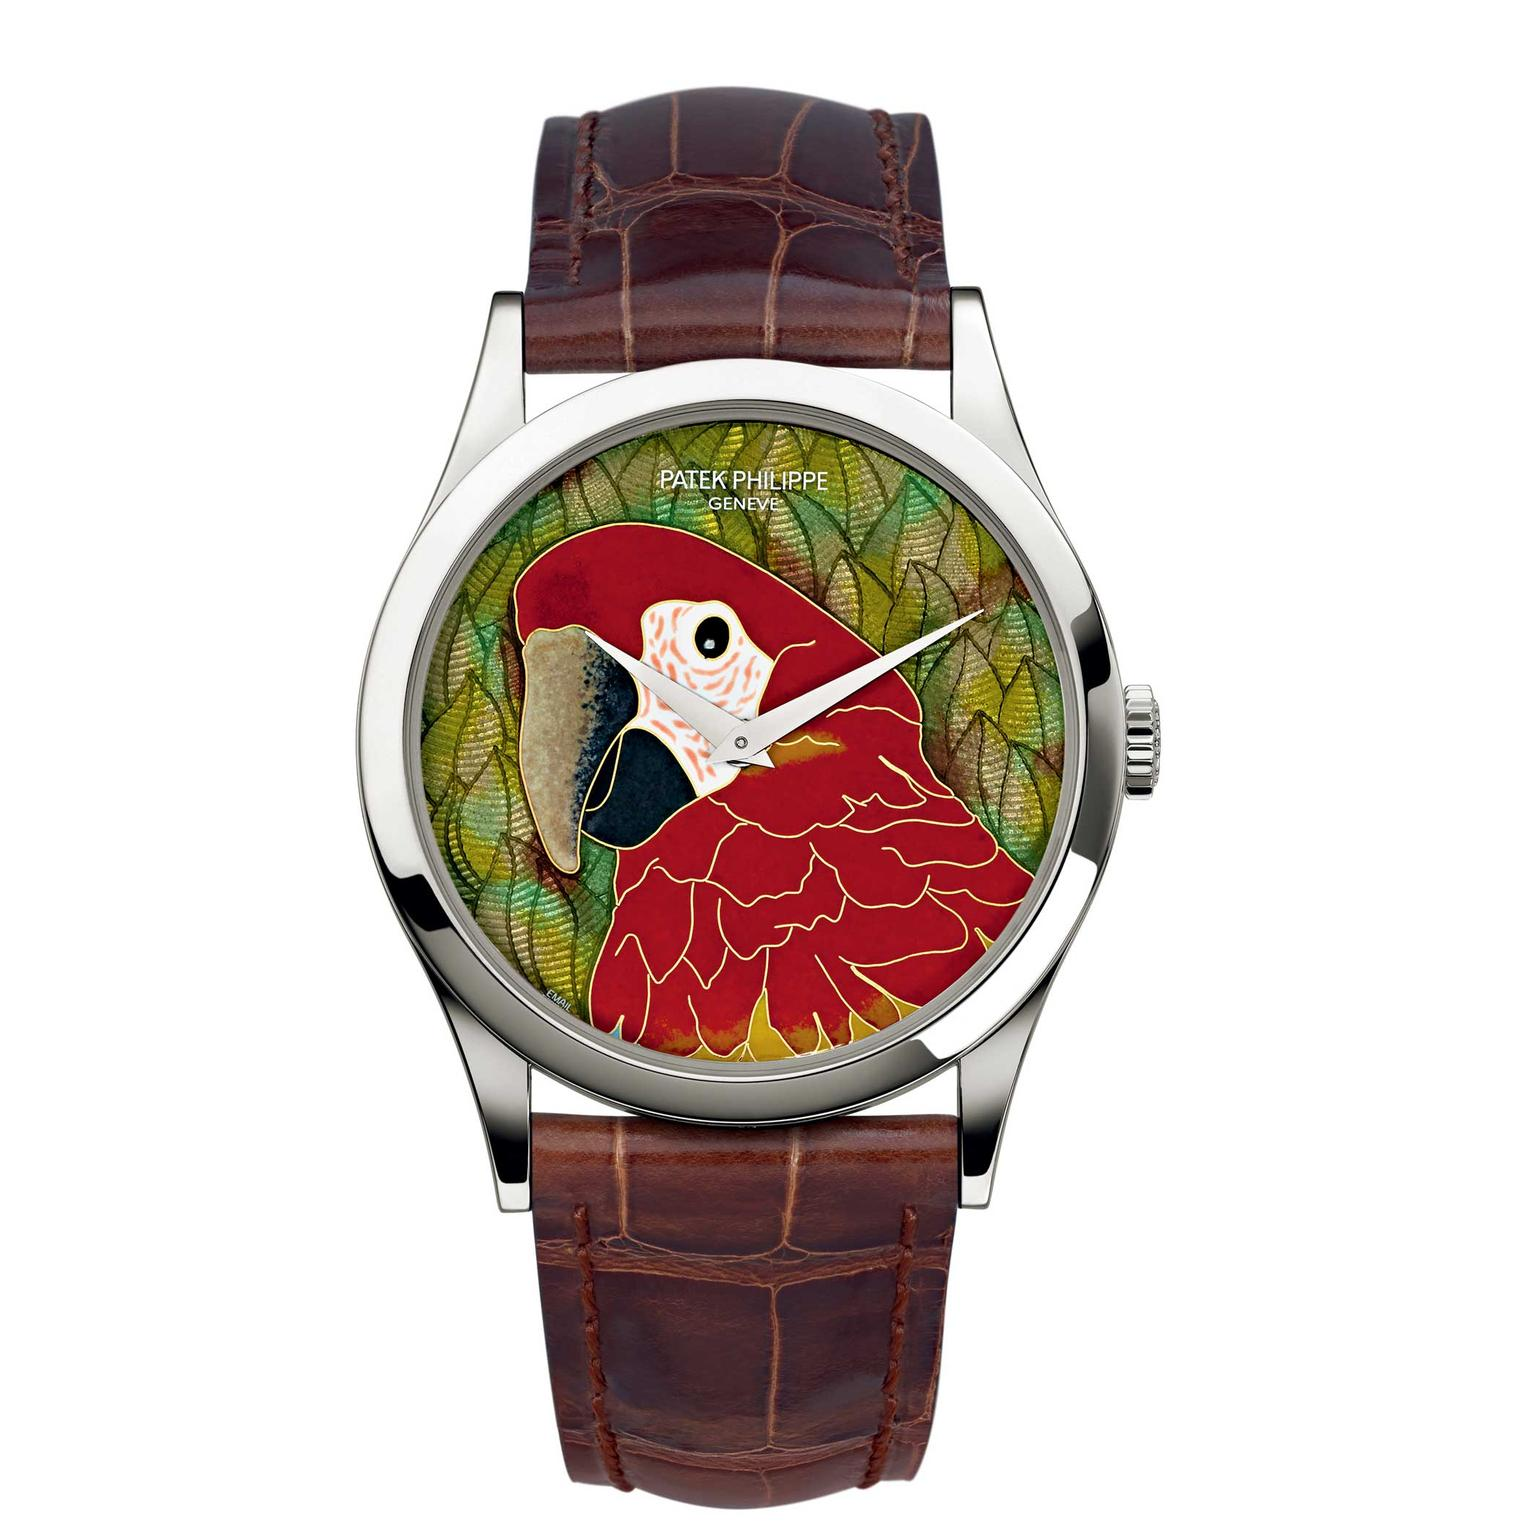 Patek Philippe Rare Handcrafts Macaw watch